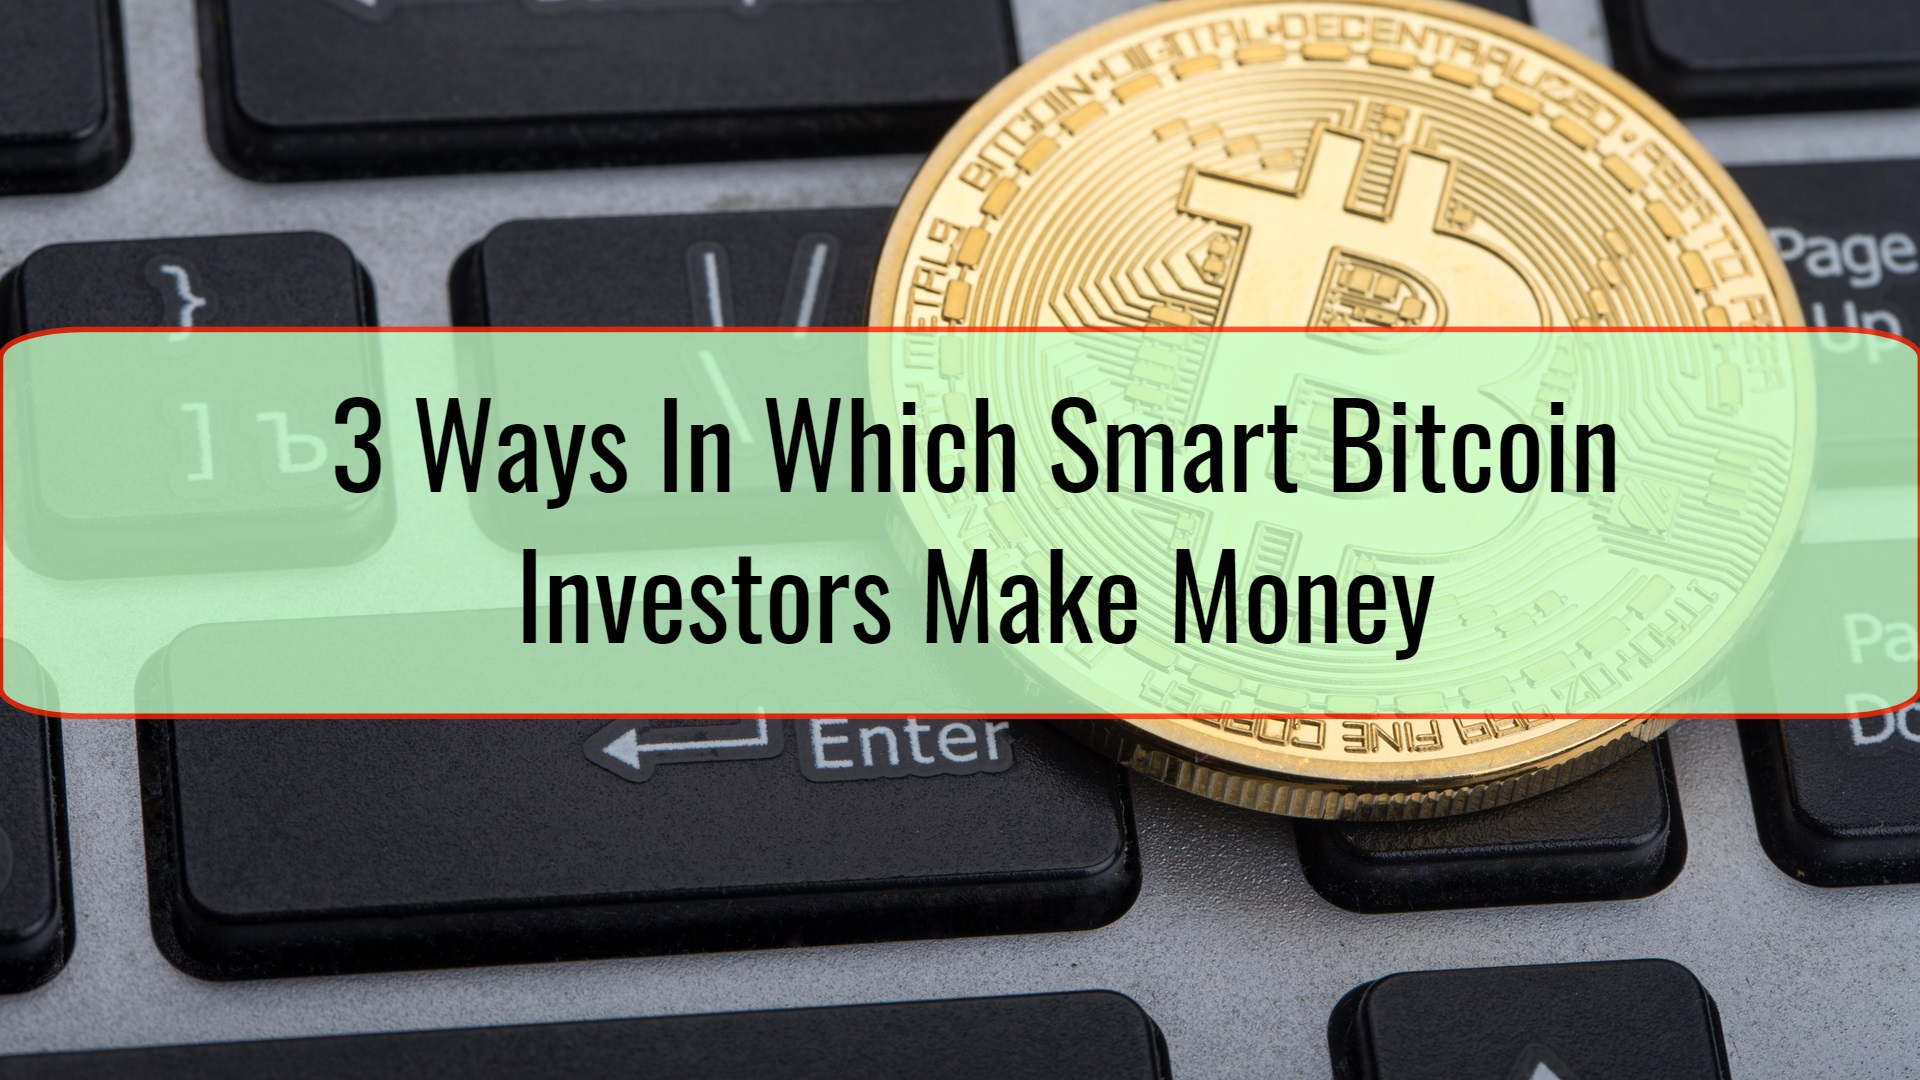 3 Ways In Which Smart Bitcoin Investors Make Money